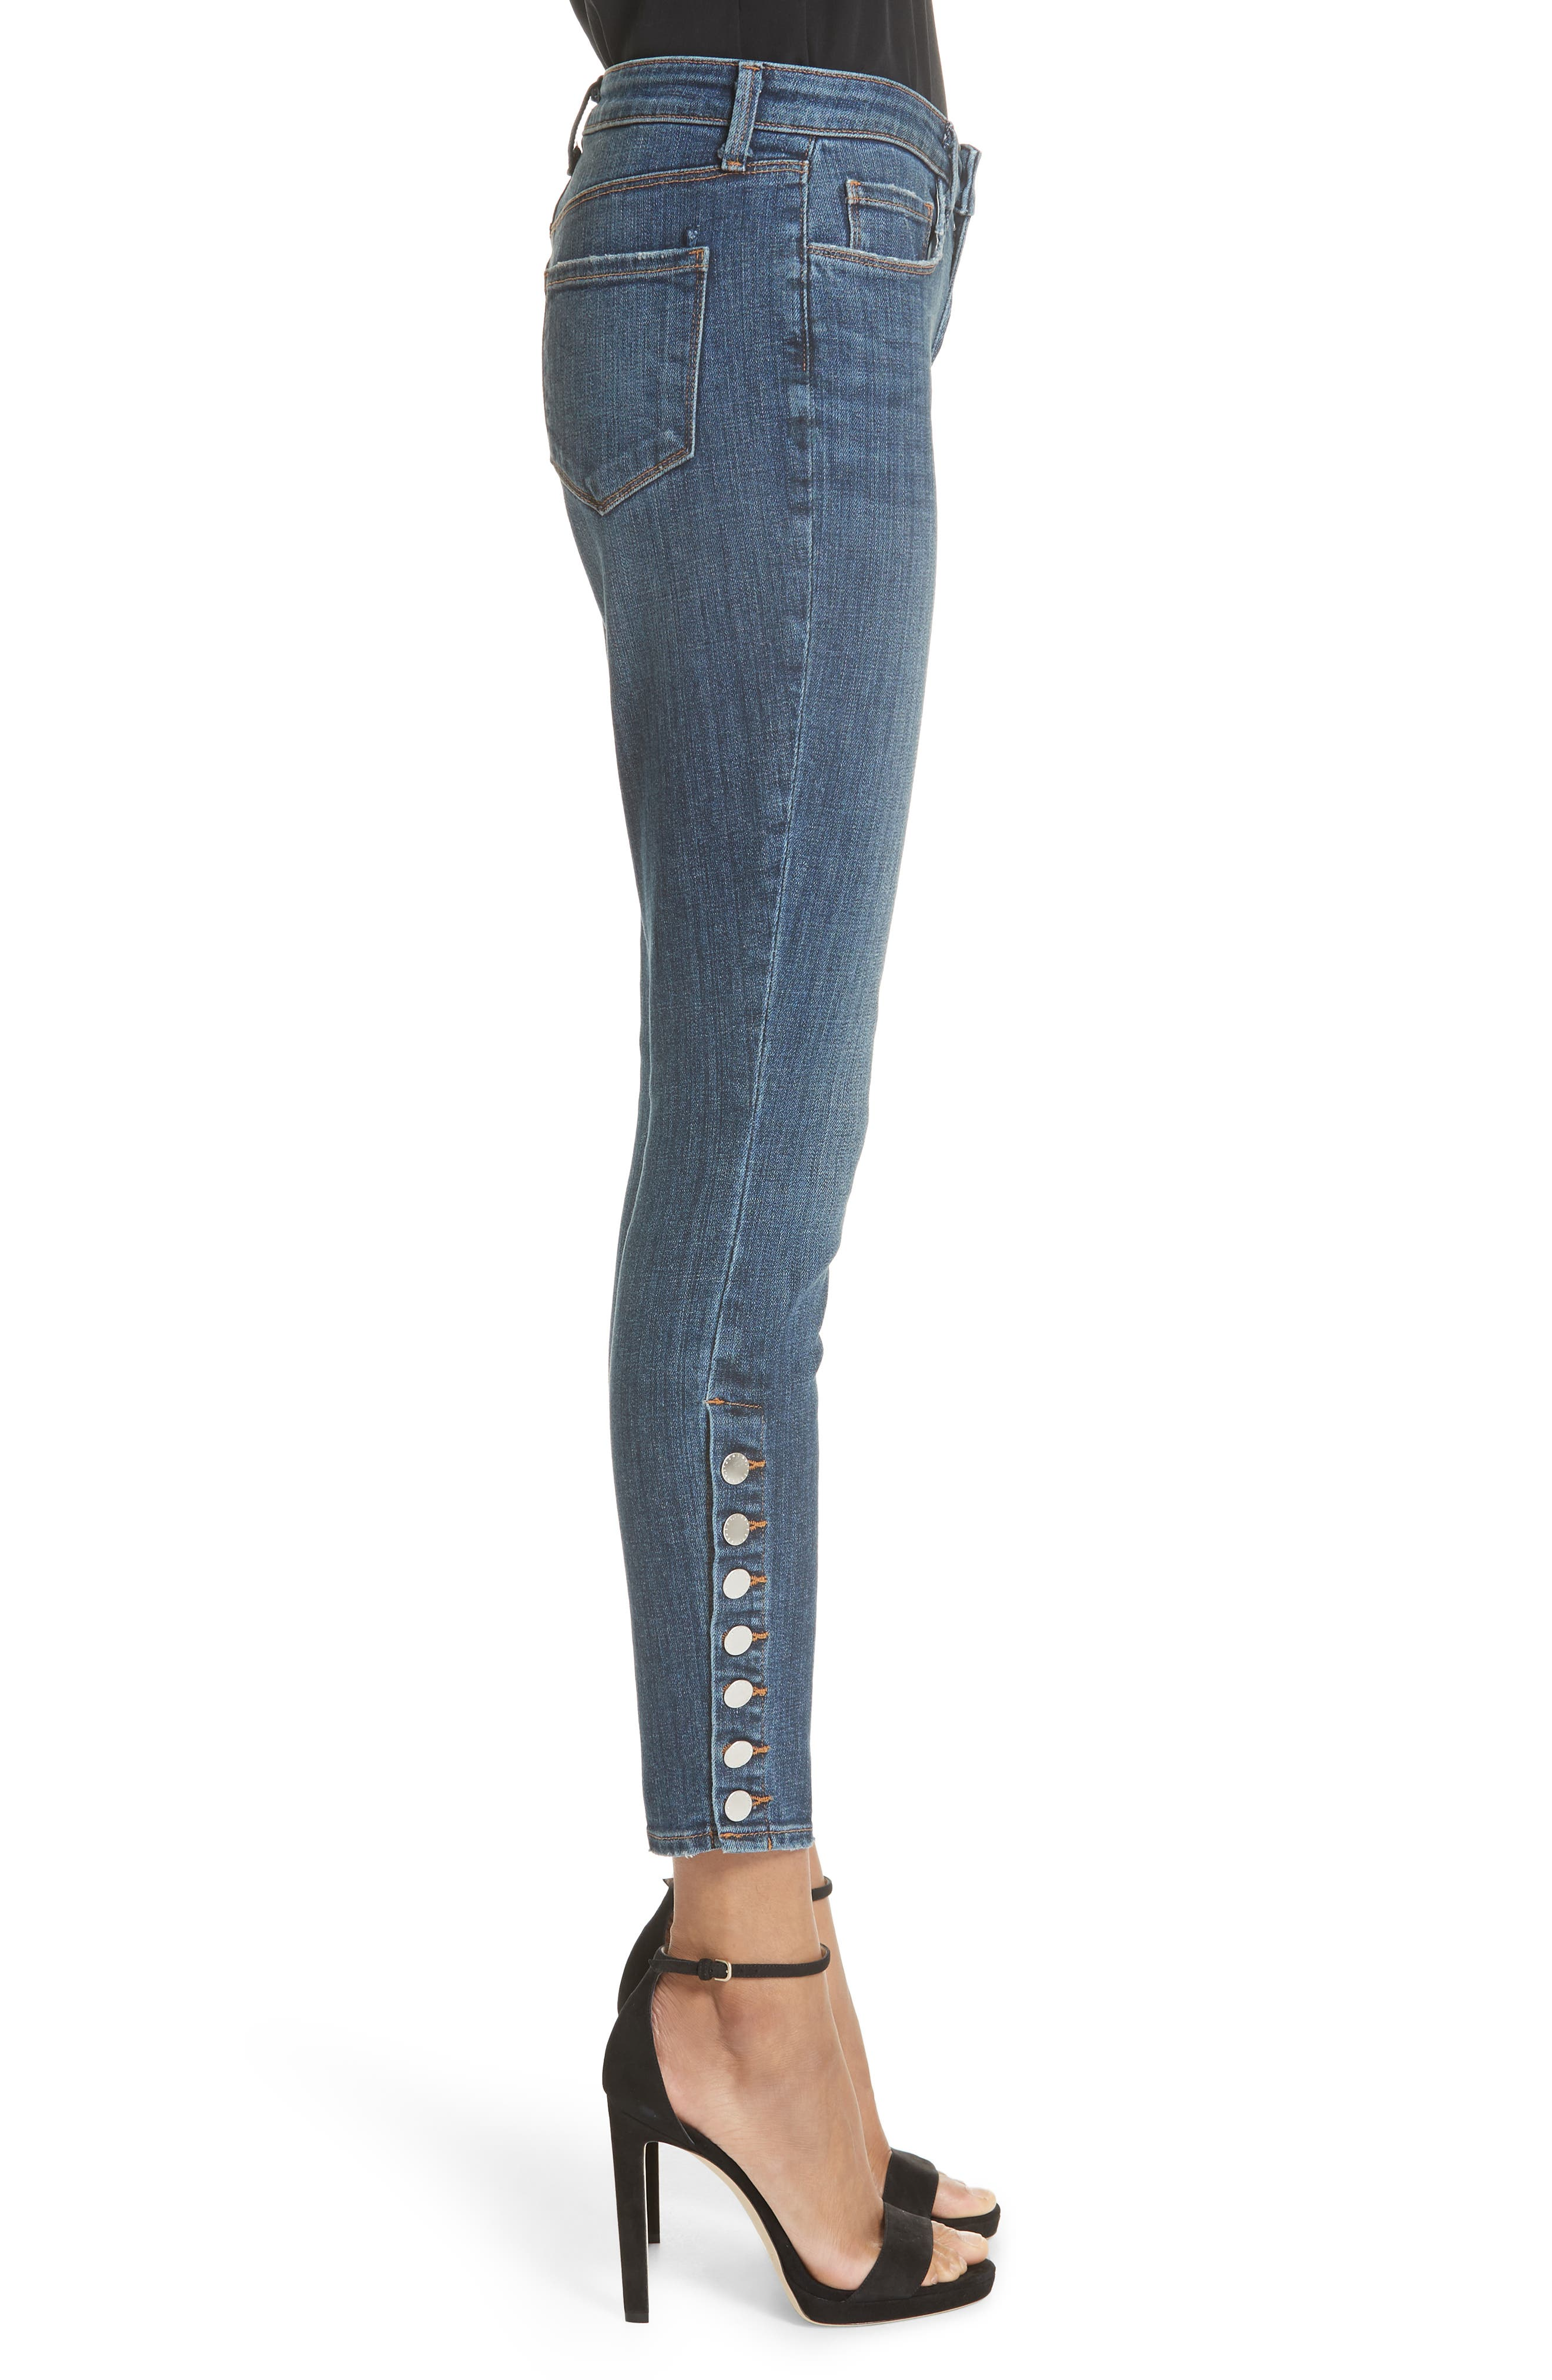 L'AGENCE, Piper Button Hem Skinny Jeans, Alternate thumbnail 3, color, CLASSIC VINTAGE